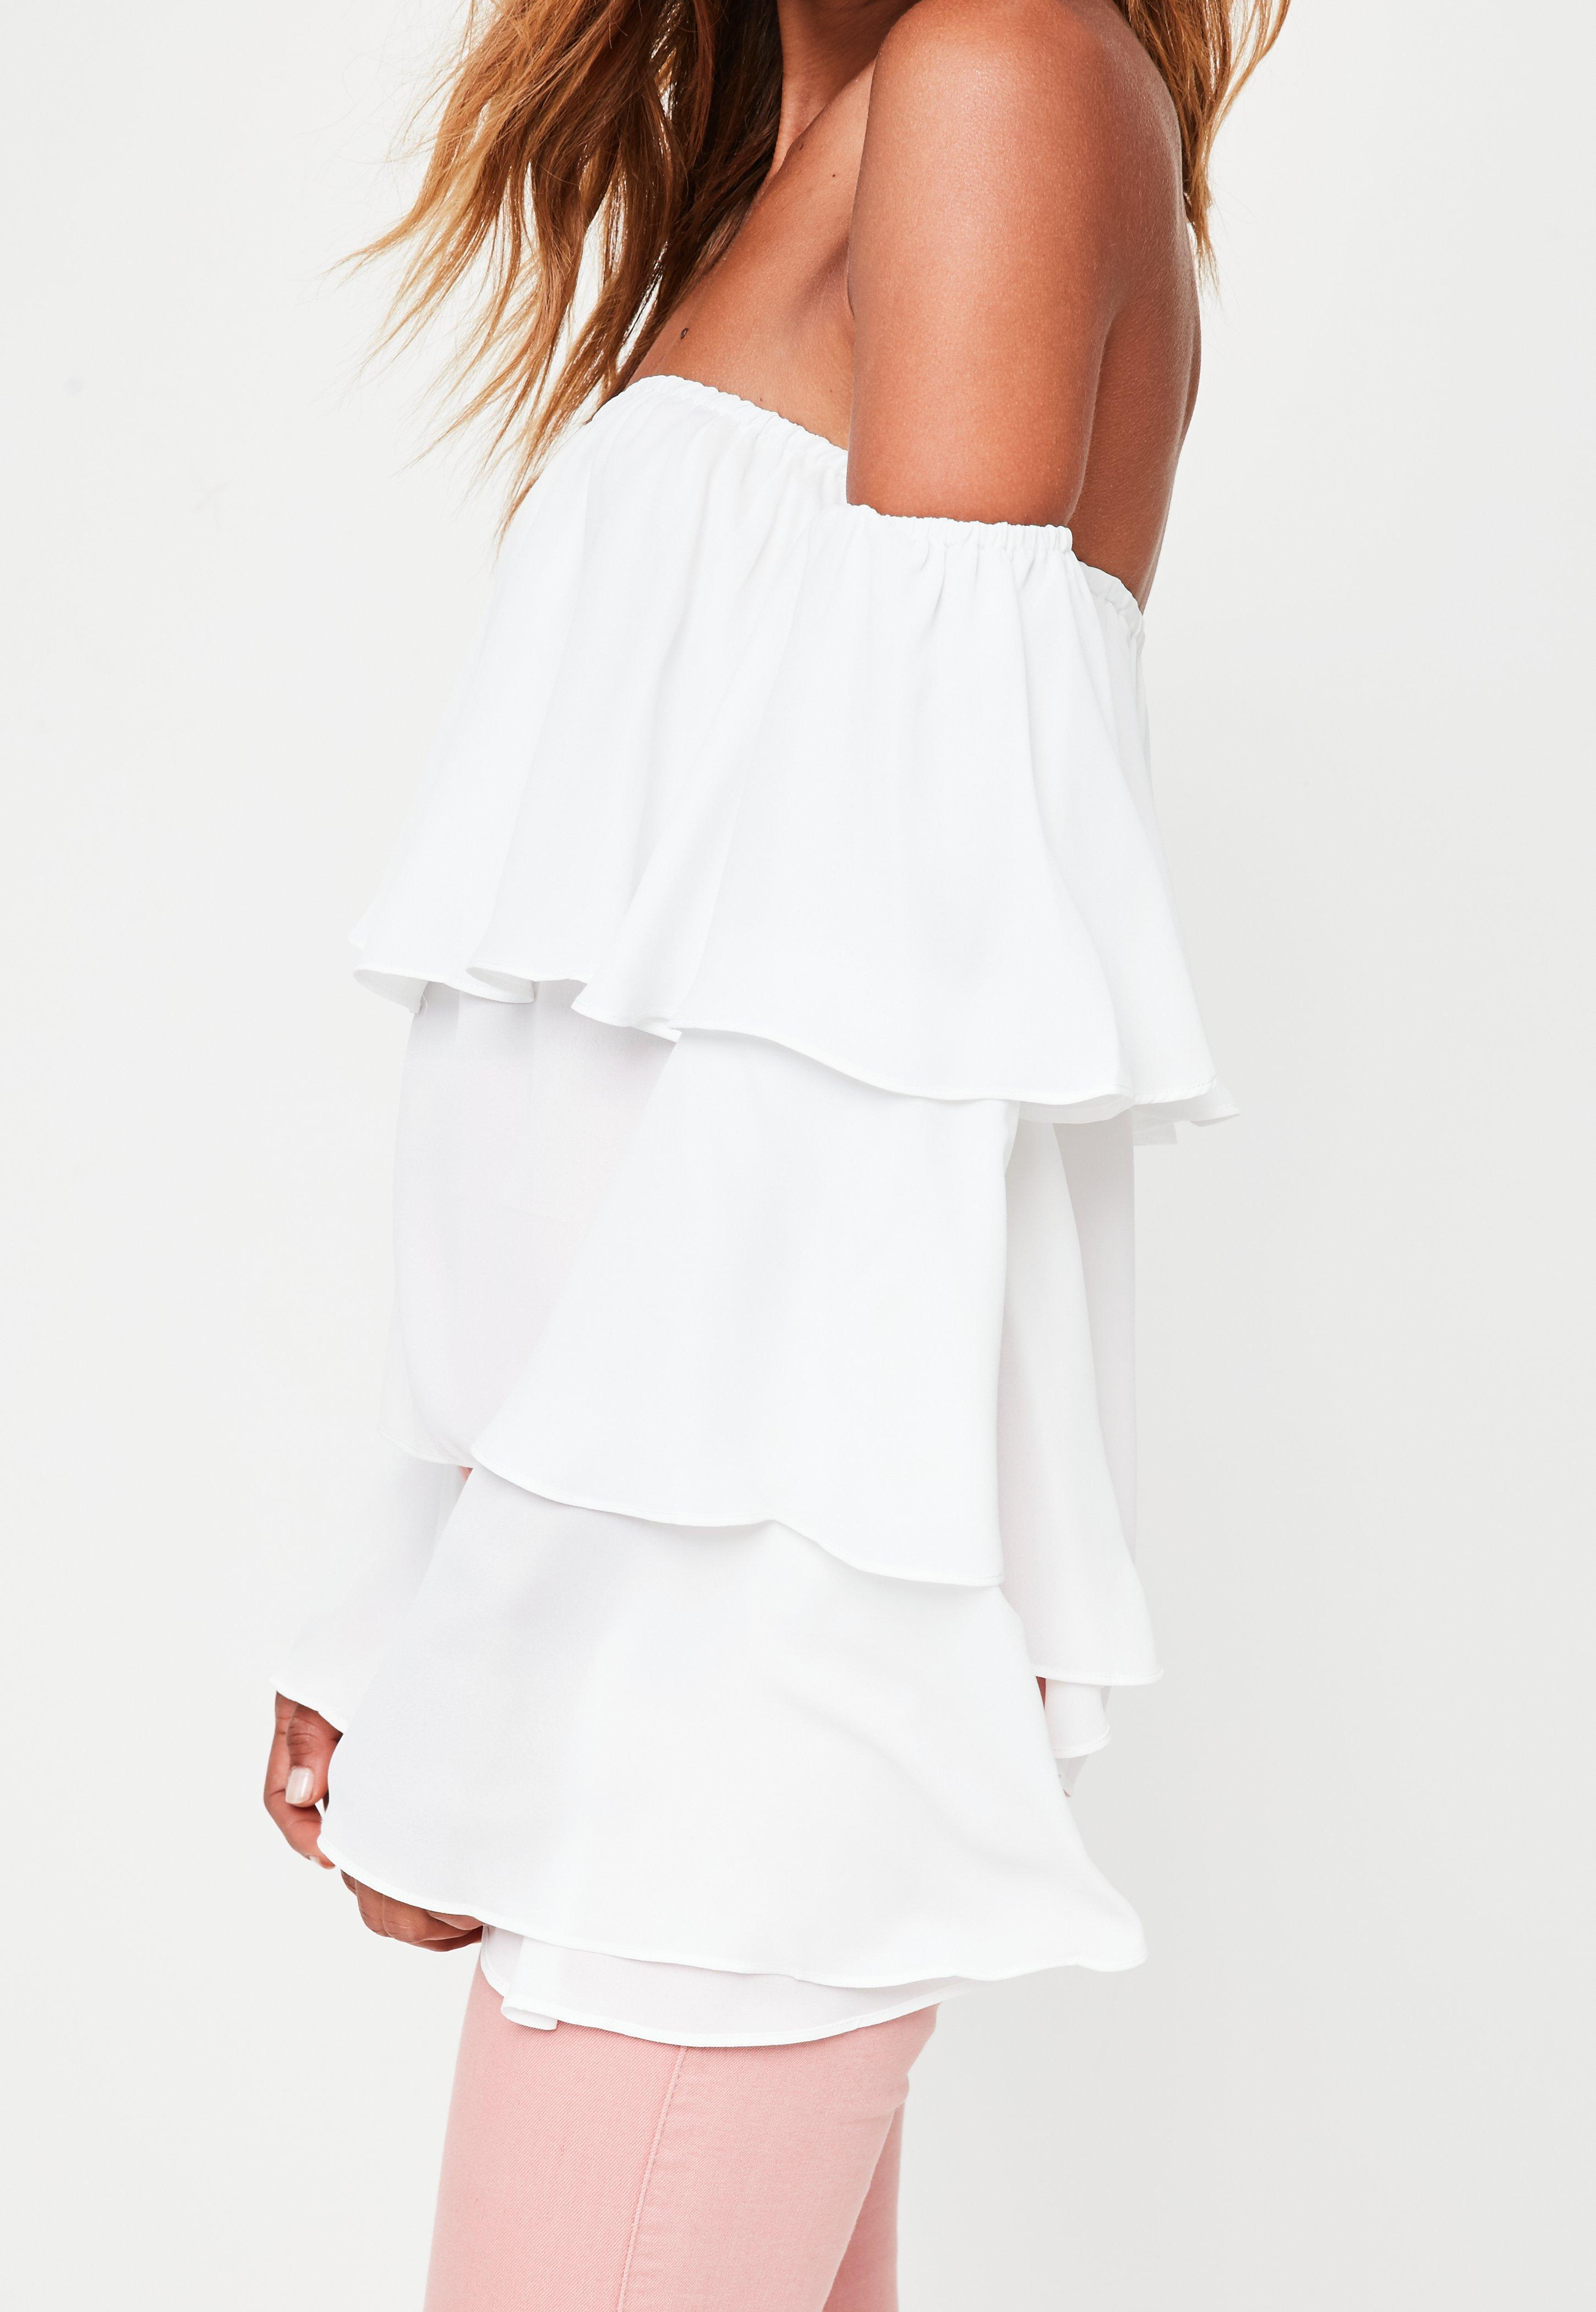 54004ab41ed2be Missguided Tall White Chiffon Bardot Top in White - Lyst